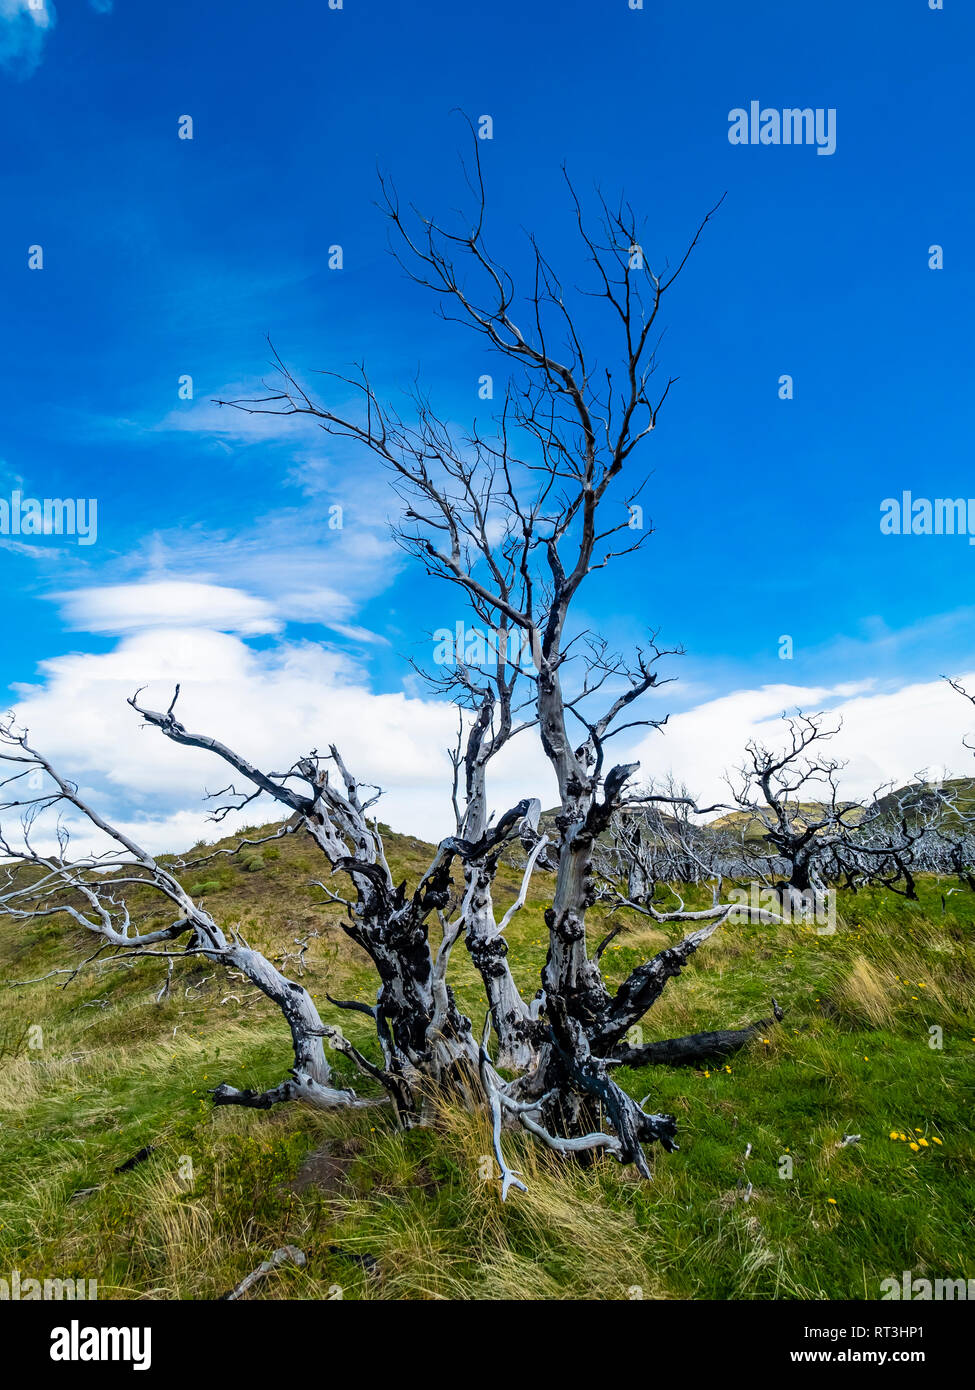 Chile, Patagonia, Torres del Paine National Park, dead trees - Stock Image